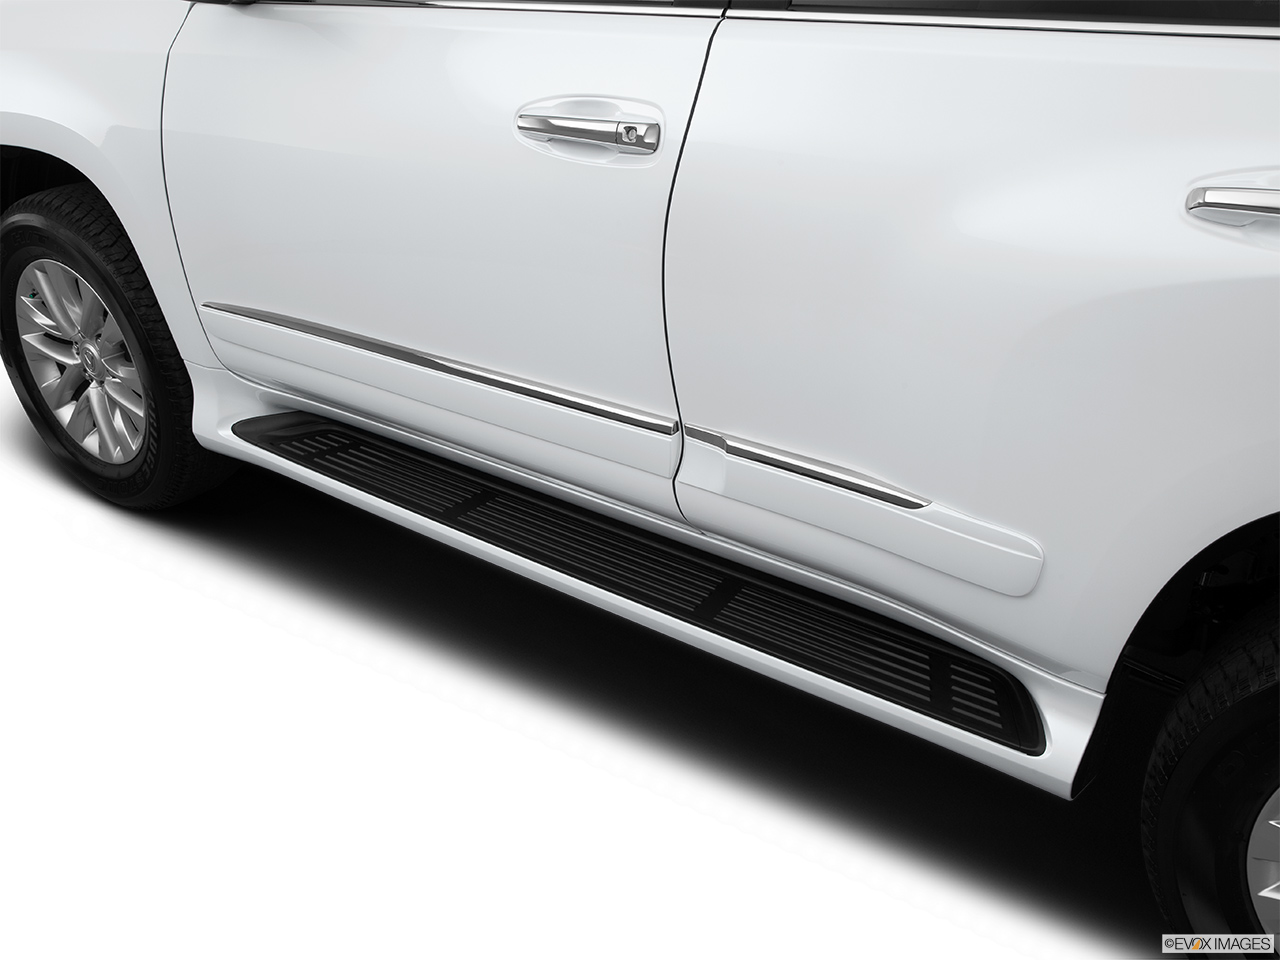 2014 Lexus Gx 460 4wd Step Bars And Running Boards